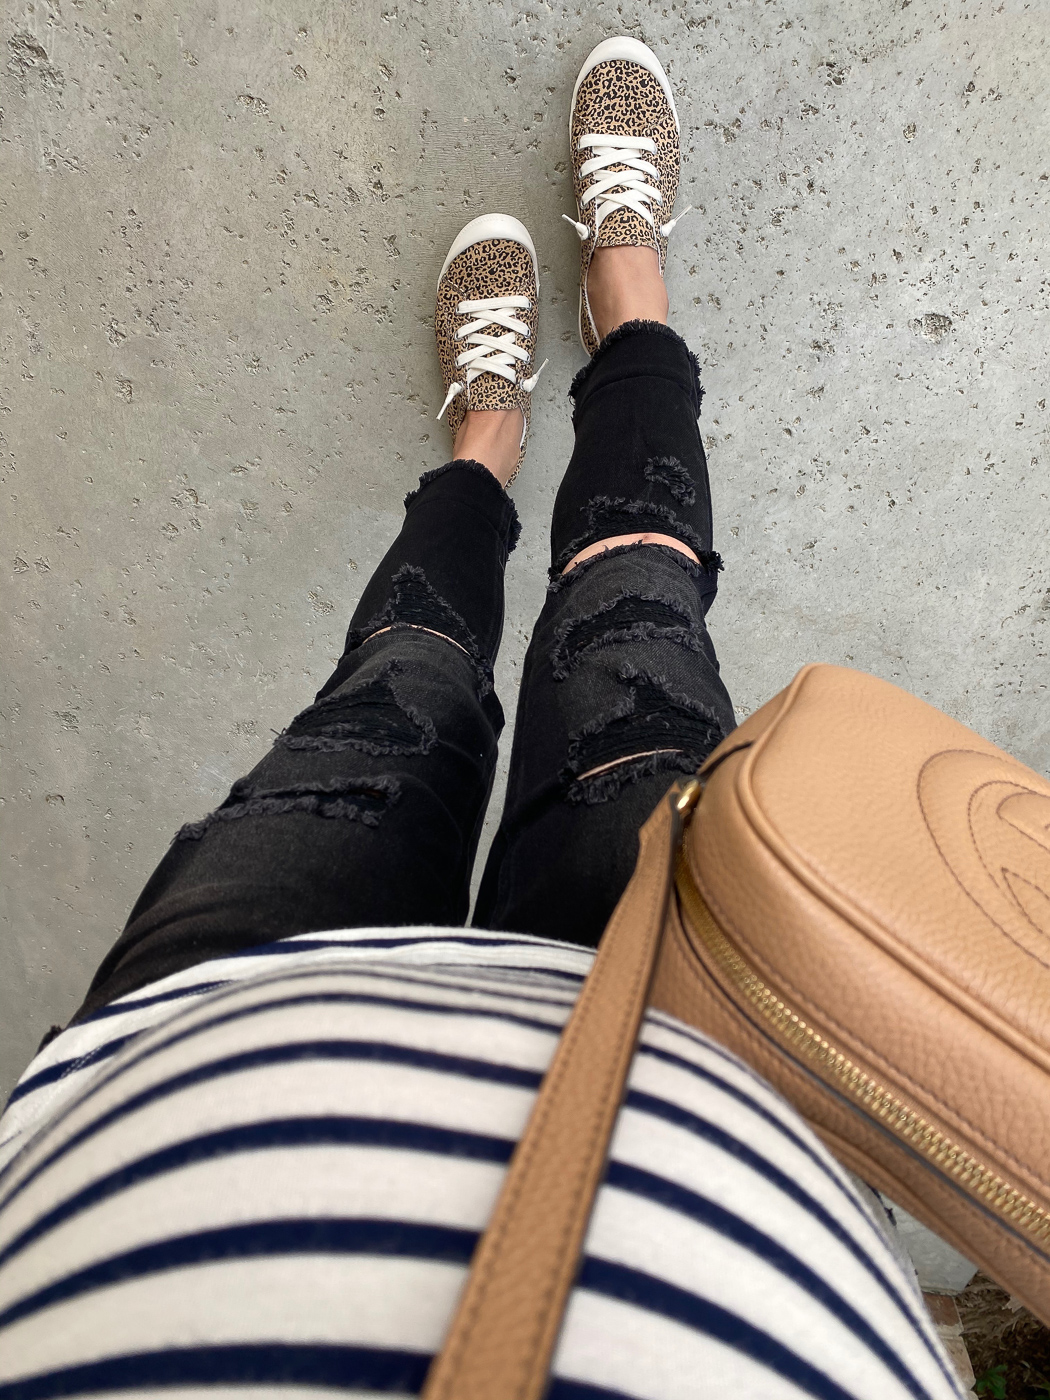 Review: Spring Dresses + Comfy Sneakers